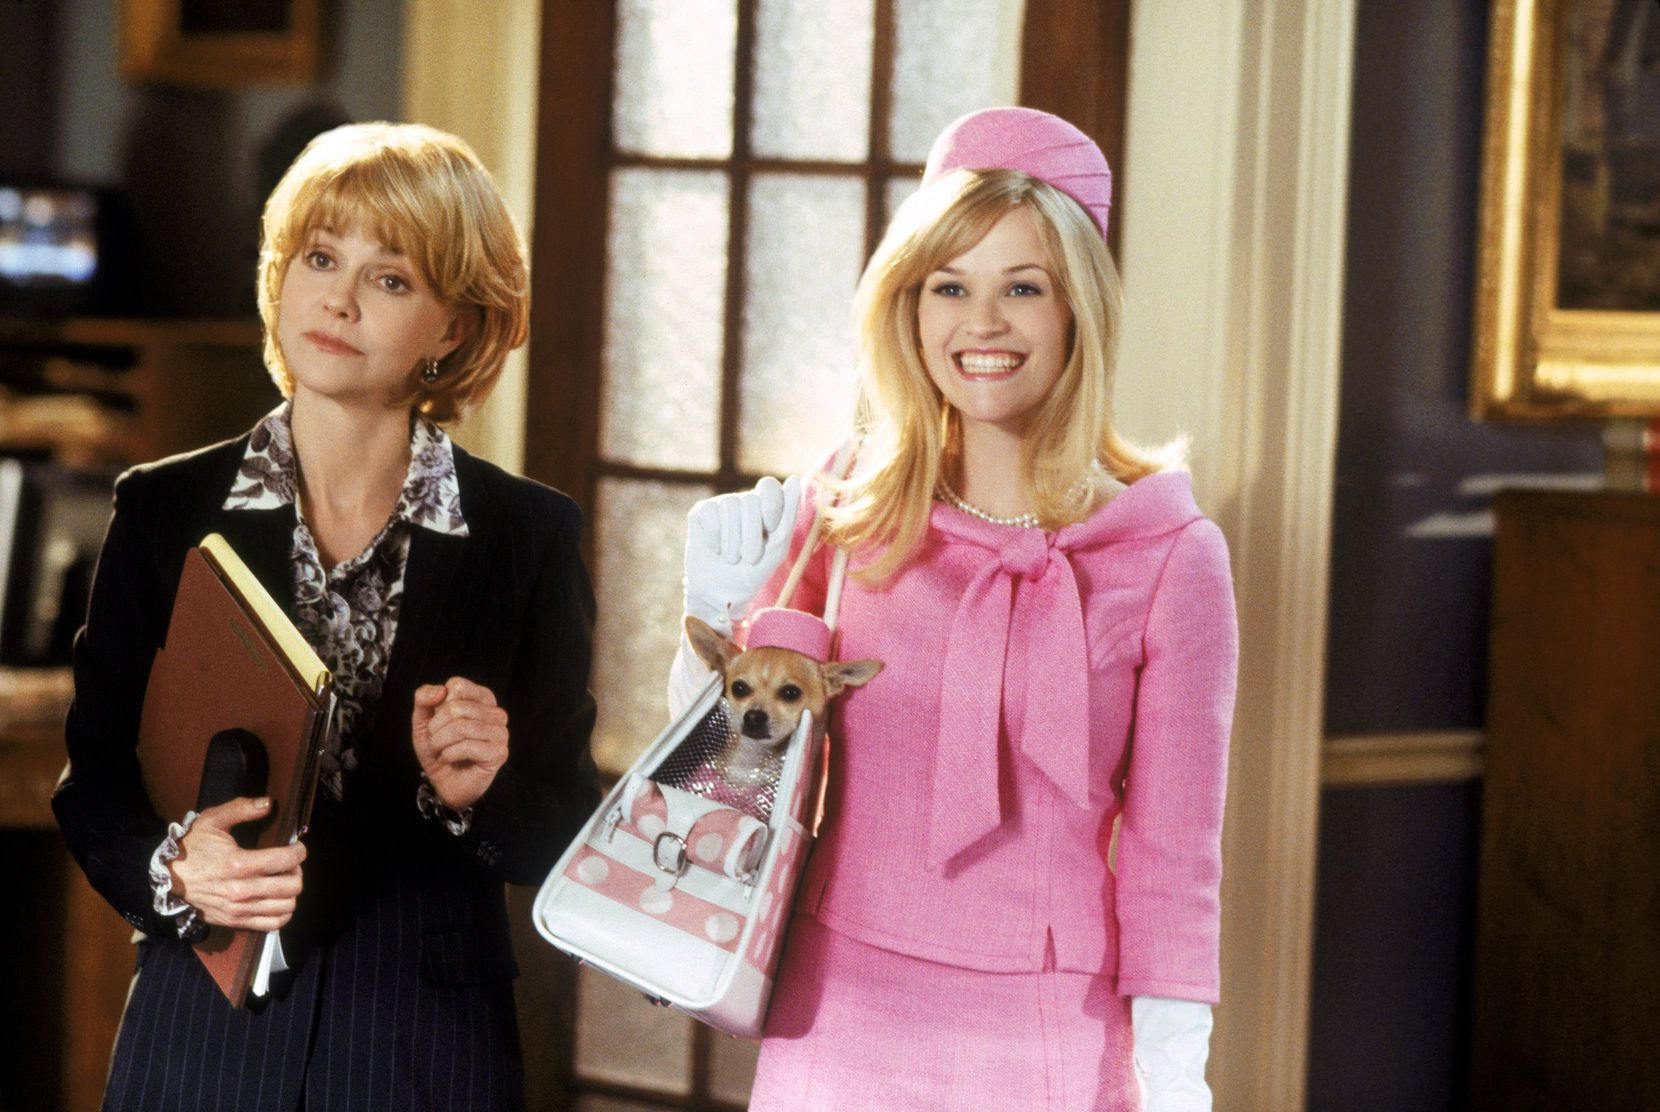 """Reese Witherspoon (right) returned as Elle Woods in  the 2003 sequel """"Legally Blonde 2: Red, White and Blonde"""" with Sally Field as  Congresswoman Rudd."""